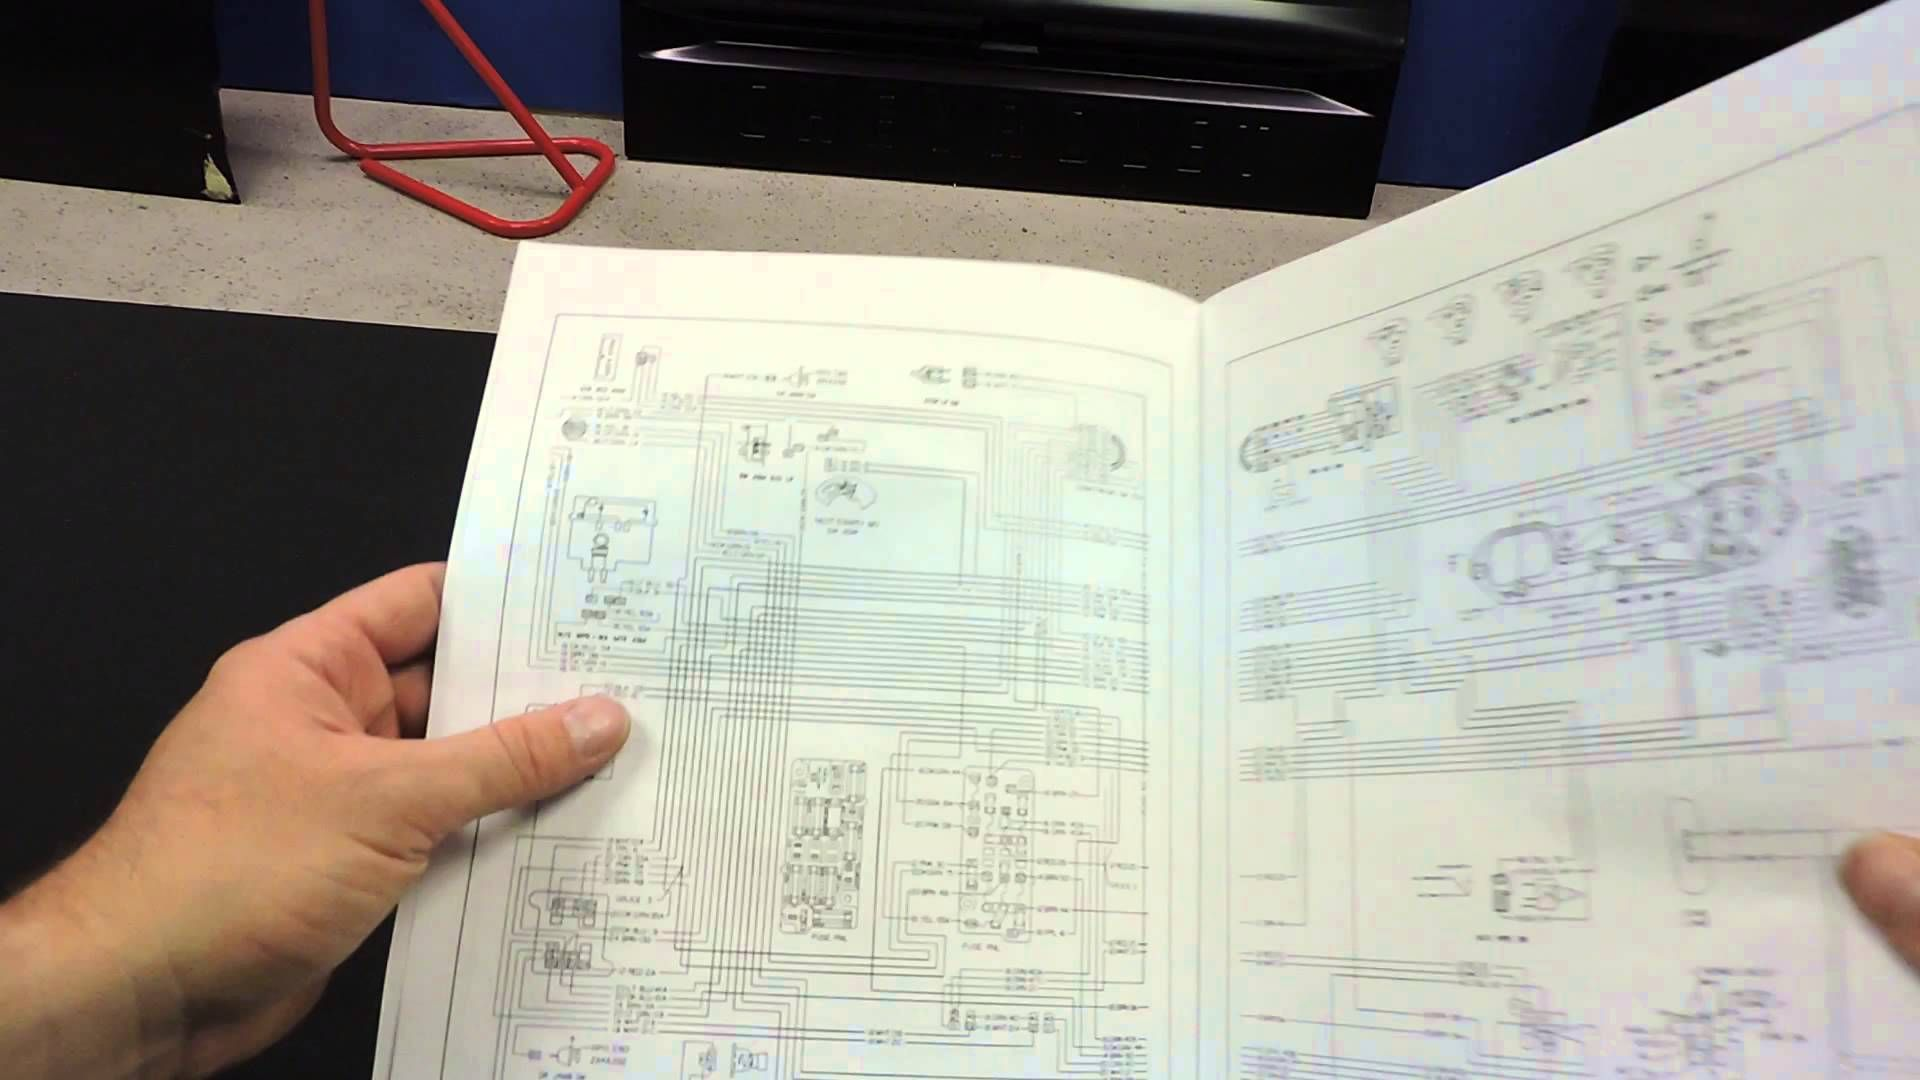 Need Fuse Box Diagram 1985 Gmc Jimmy 4x4 Wiring Library Truck Buick Lesabre